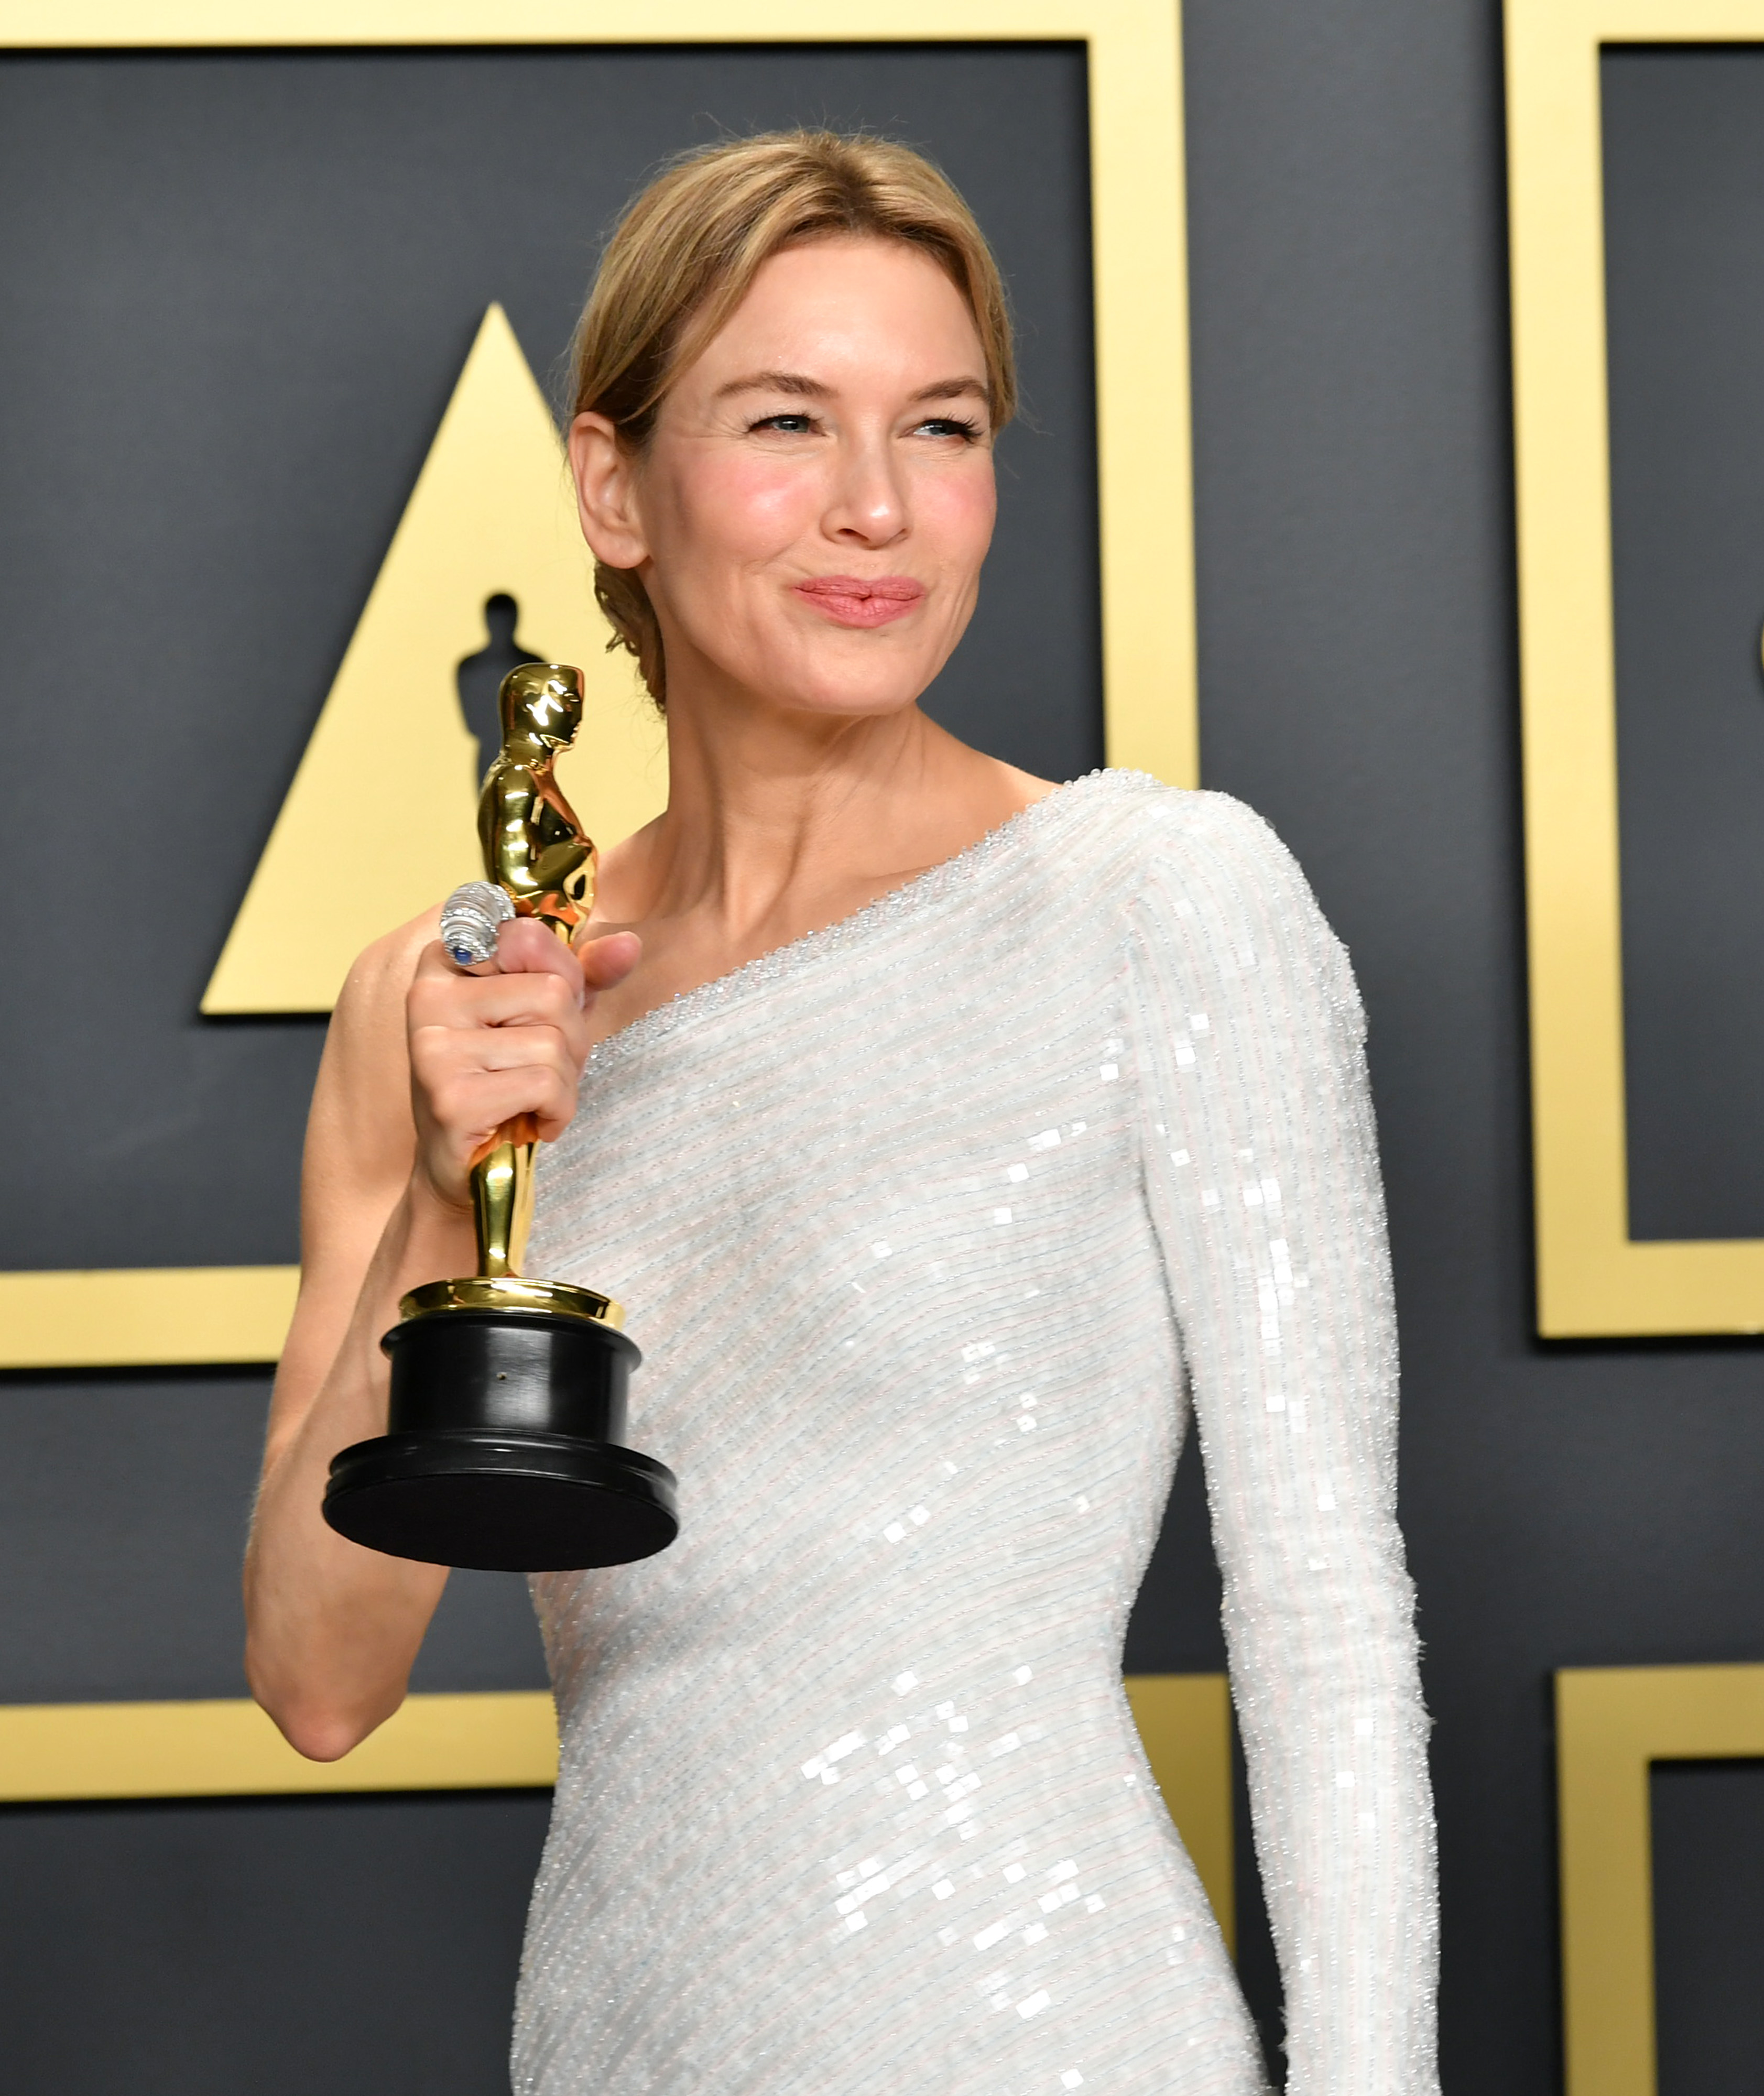 """Renée Zellweger, winner of the Actress in a Leading Role award for """"Judy,"""" poses in the press room during the 92nd Annual Academy Awards at Hollywood and Highland on February 09, 2020 in Hollywood, California. (Photo by Amy Sussman/Getty Images)"""